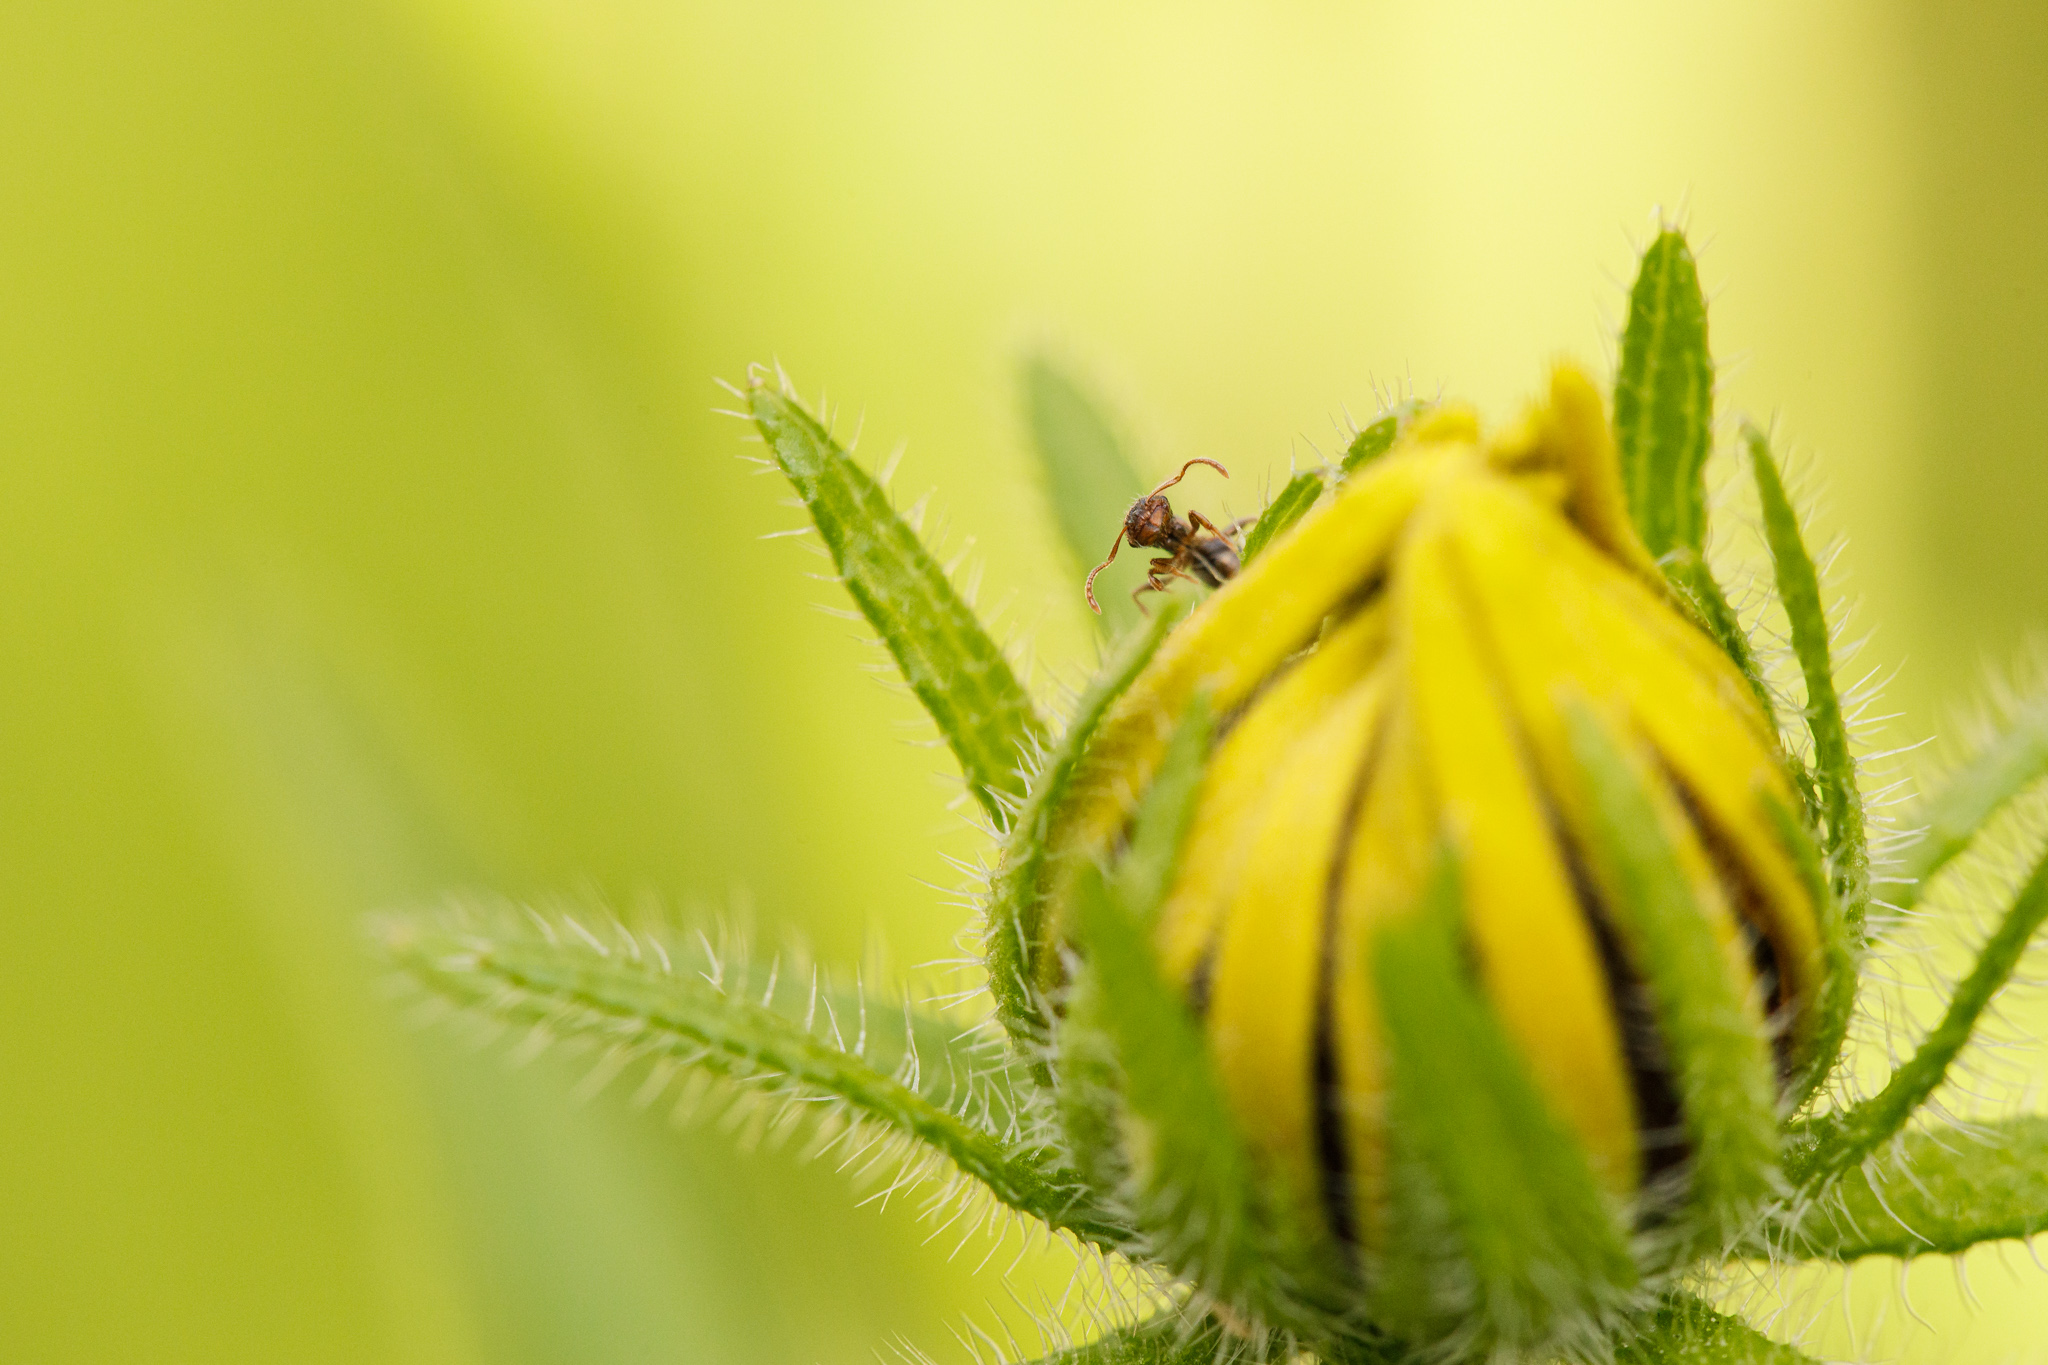 small ant on rudbeckia bloom